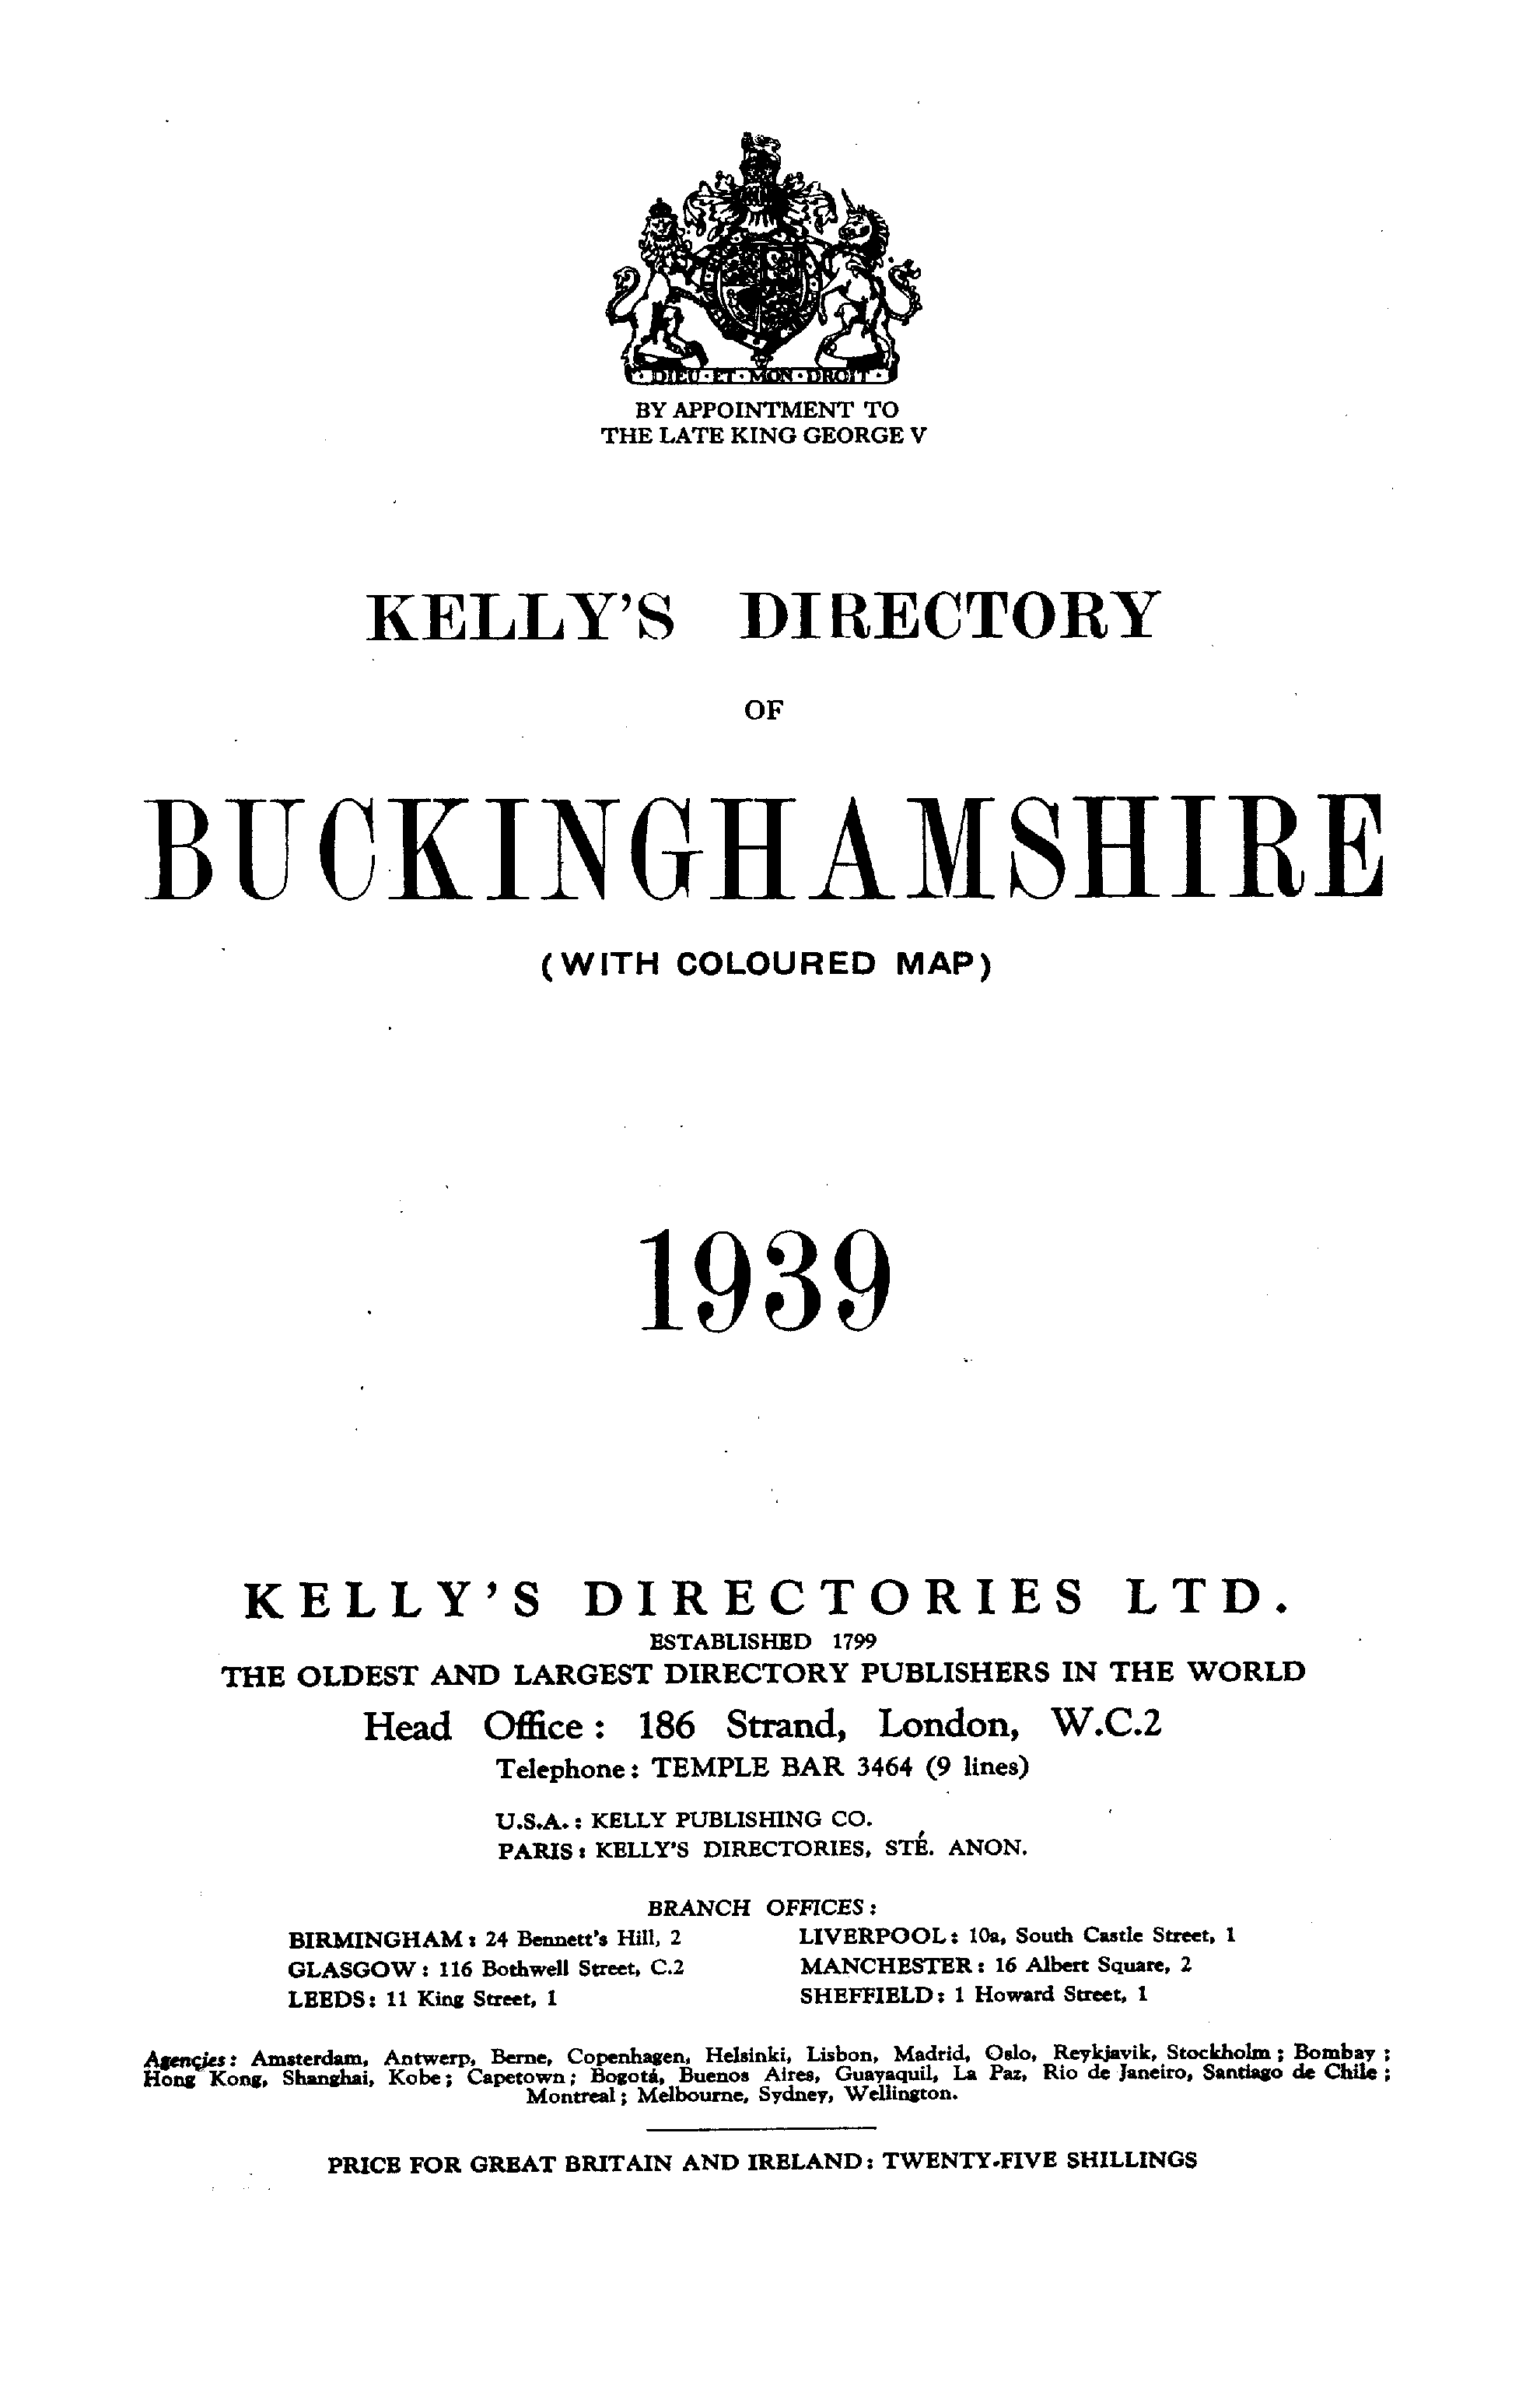 Kelly's Directory of Buckinghamshire, 1939 page i - click to open larger version in a new window